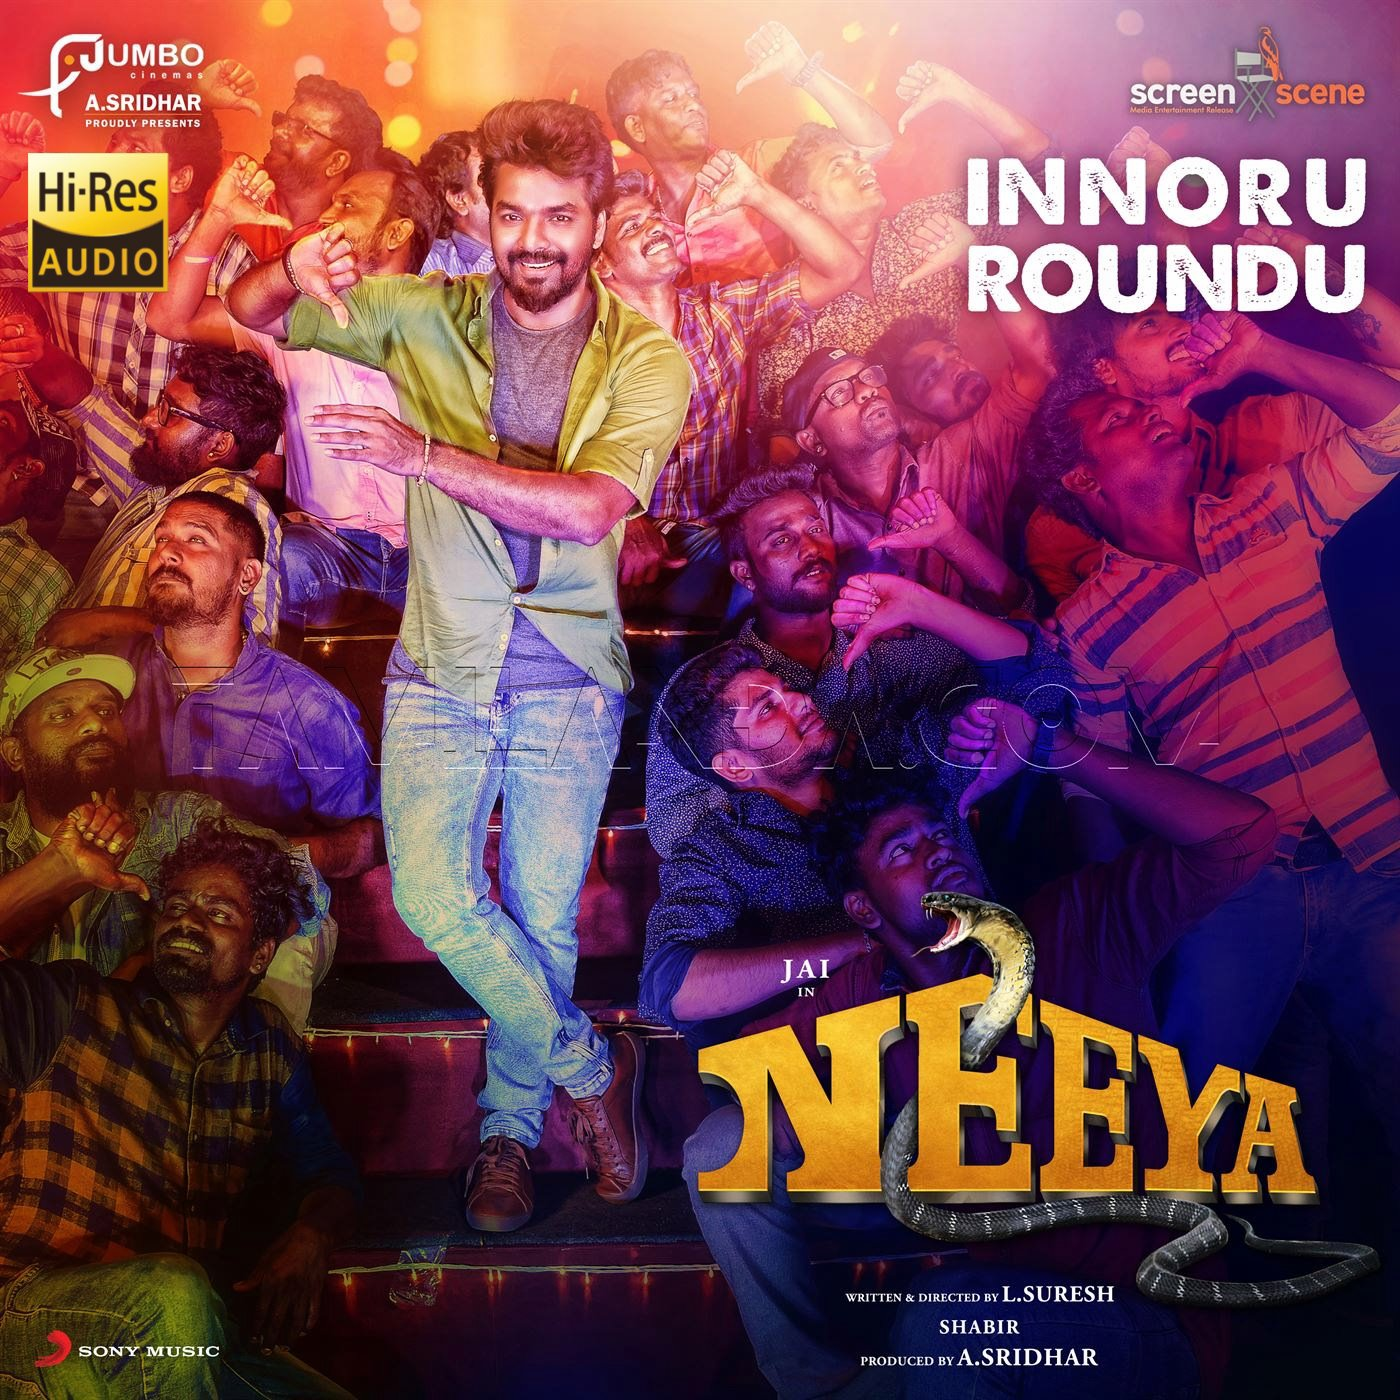 Innoru Roundu (From Neeya 2) – Single – (2018) 24 BIT 48 KHZ FLAC Song